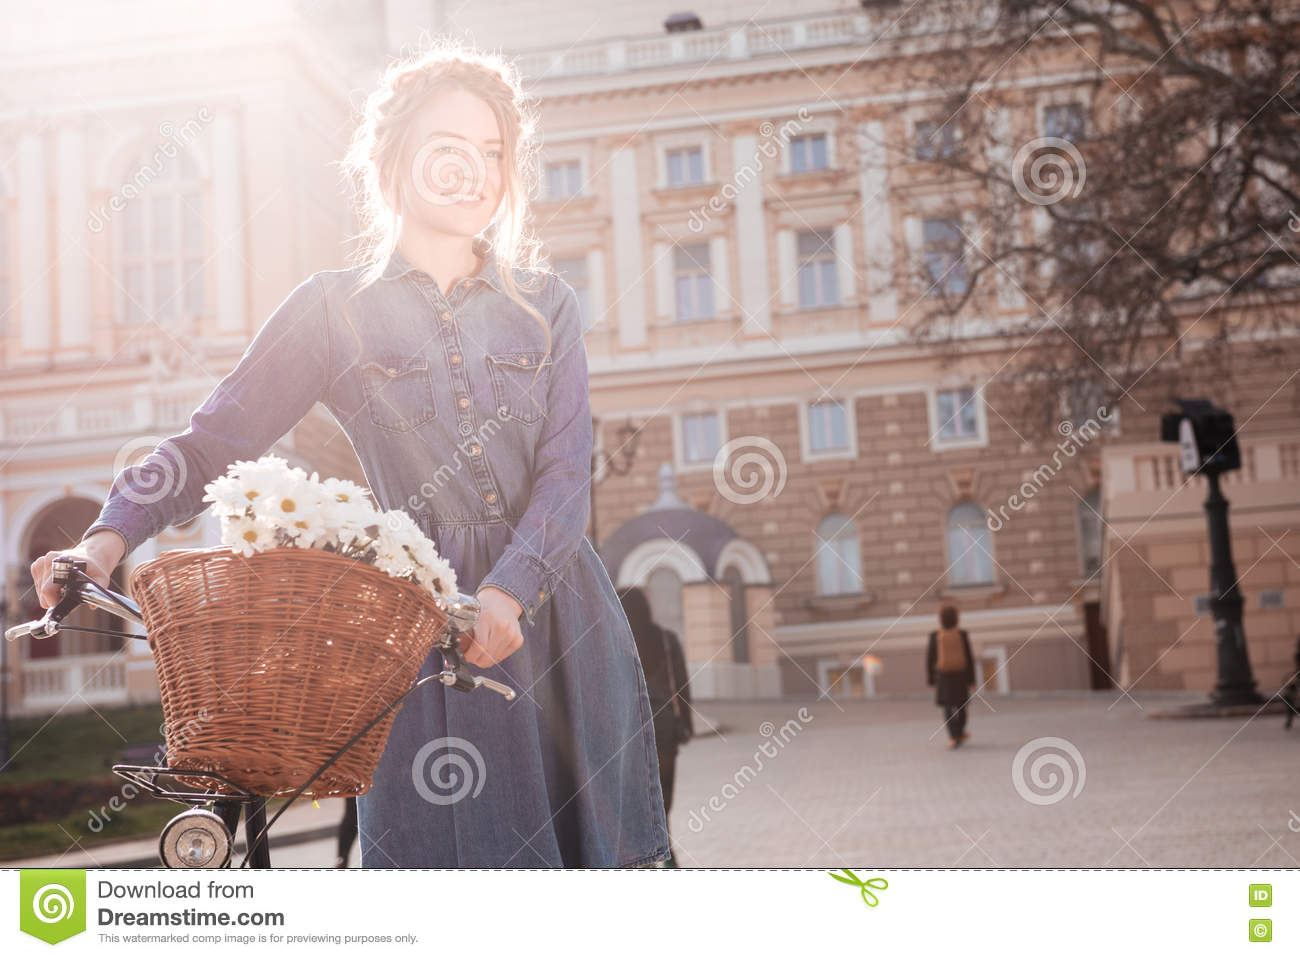 Smiling woman standing with bike in the city